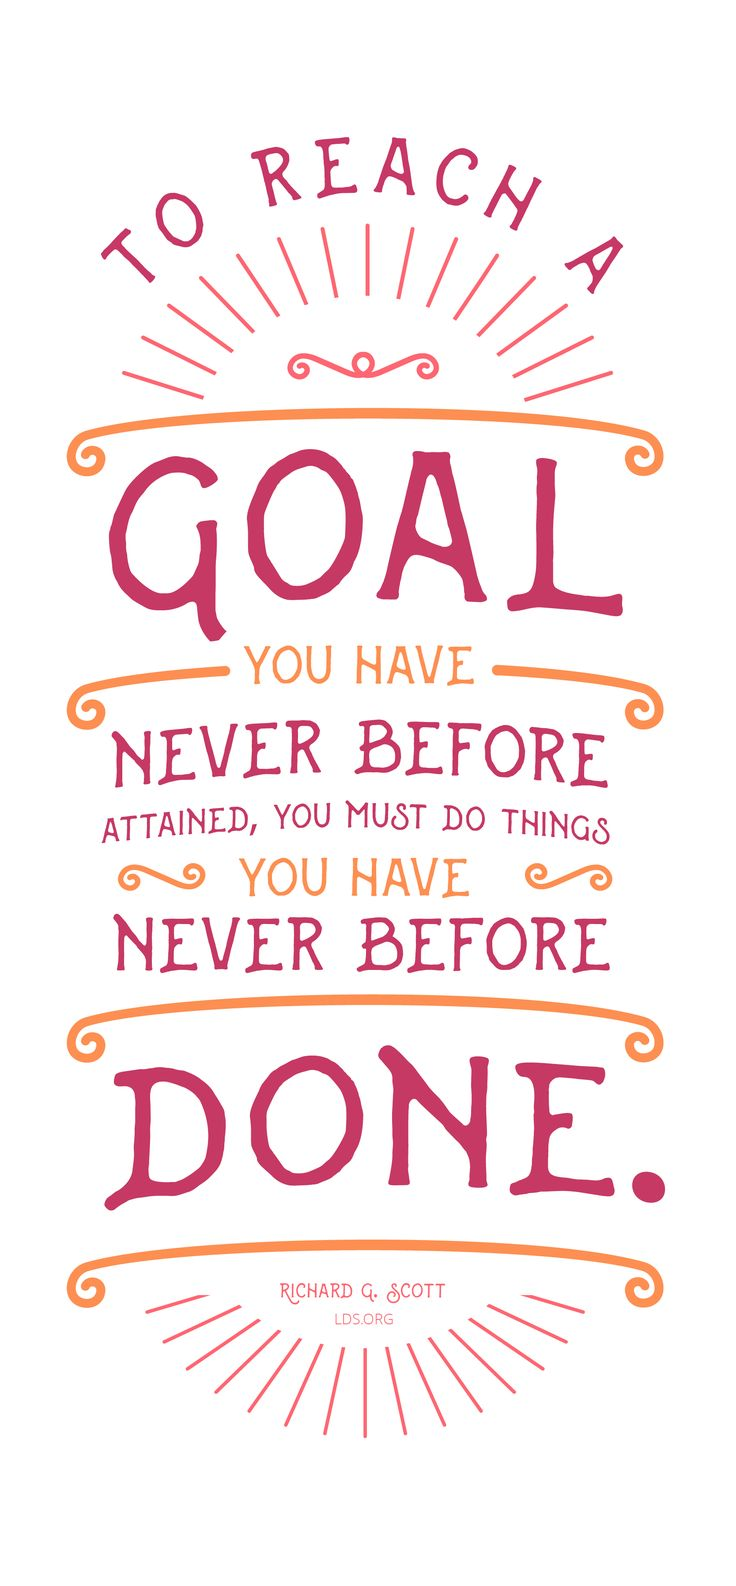 What can you do if you have goals that are far out of reach?